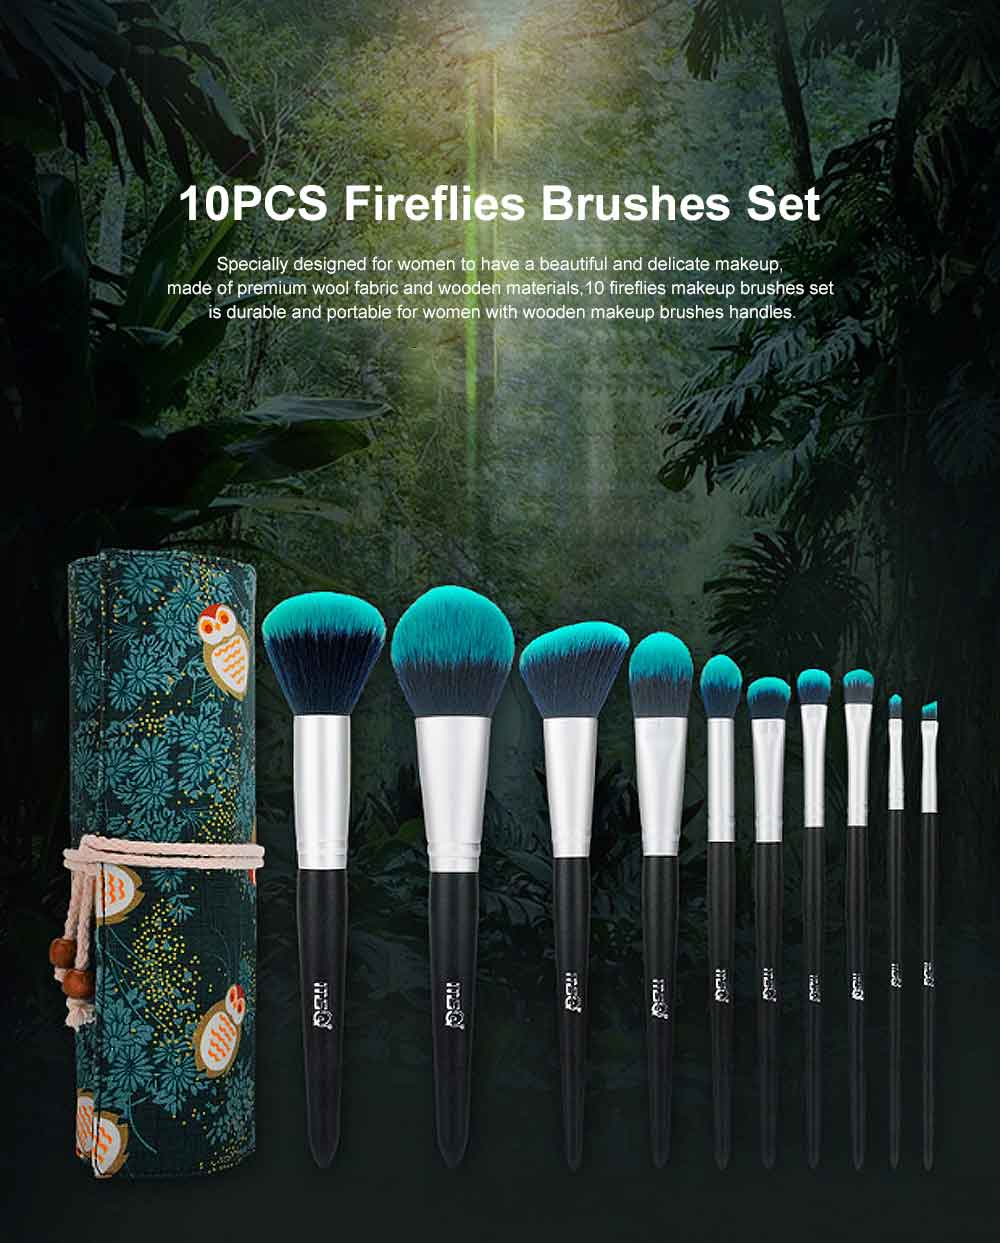 Fireflies Makeup Brushes Set with Reactive Dyed Cloth Bag, Makeup Brushes for Women, Cosmetic Tool, 10PCS 0